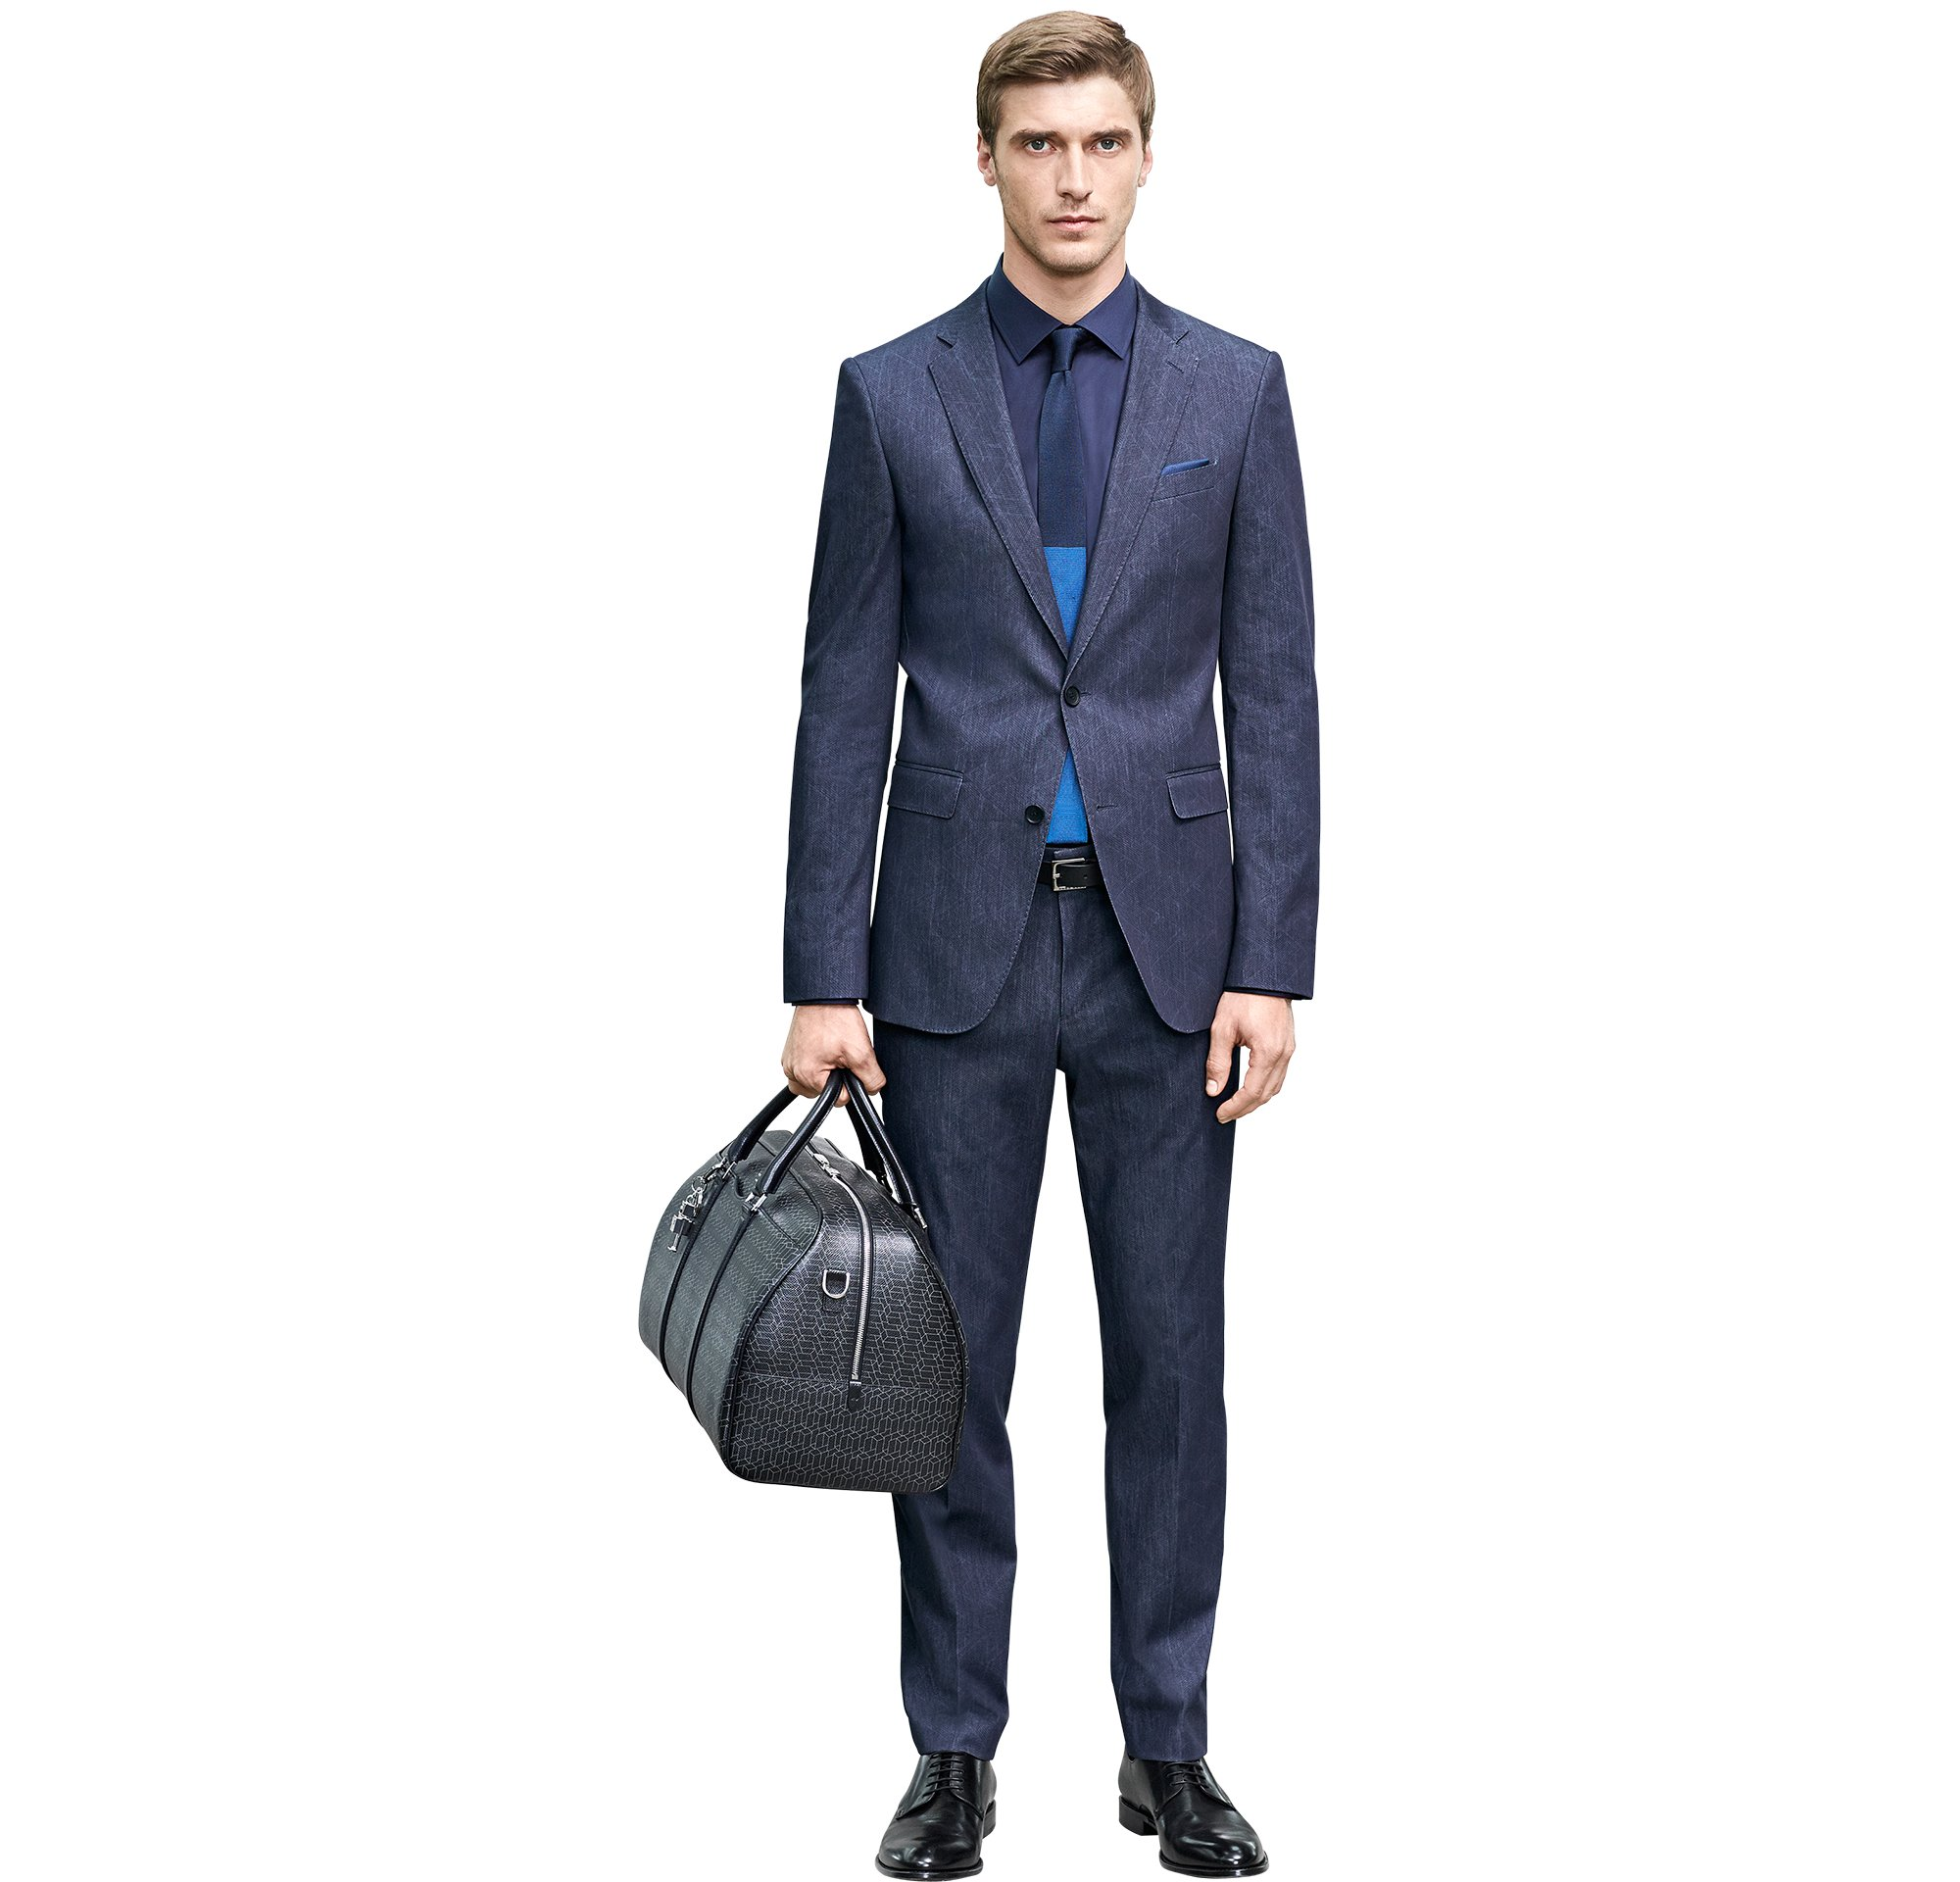 Dark grey suit over shirt with tie, bag and shoes by BOSS